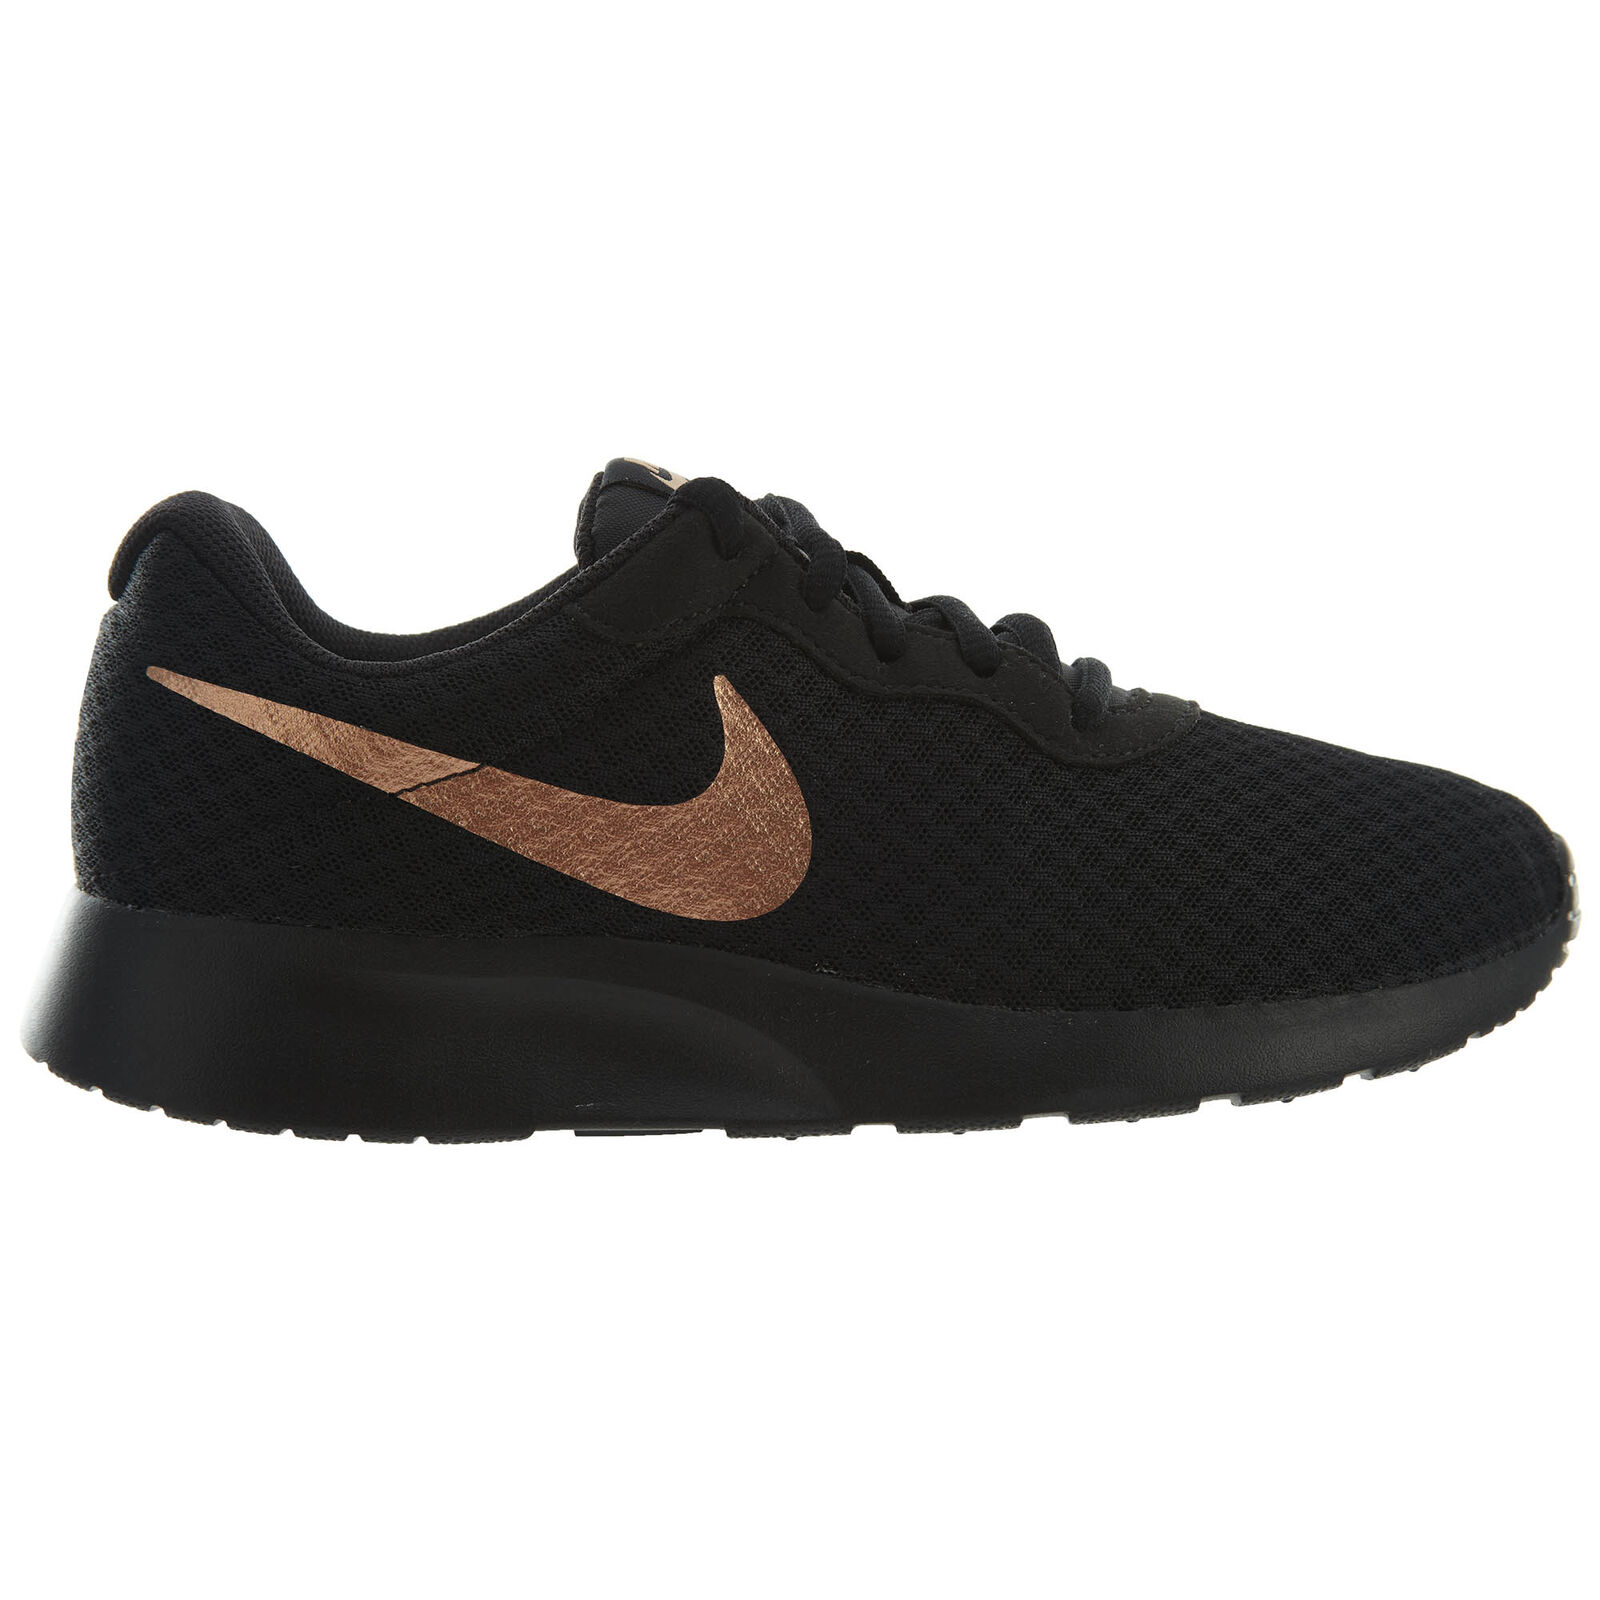 Nike Tanjun655-005 Black Metallic Bronze Mesh Running Shoes Comfortable